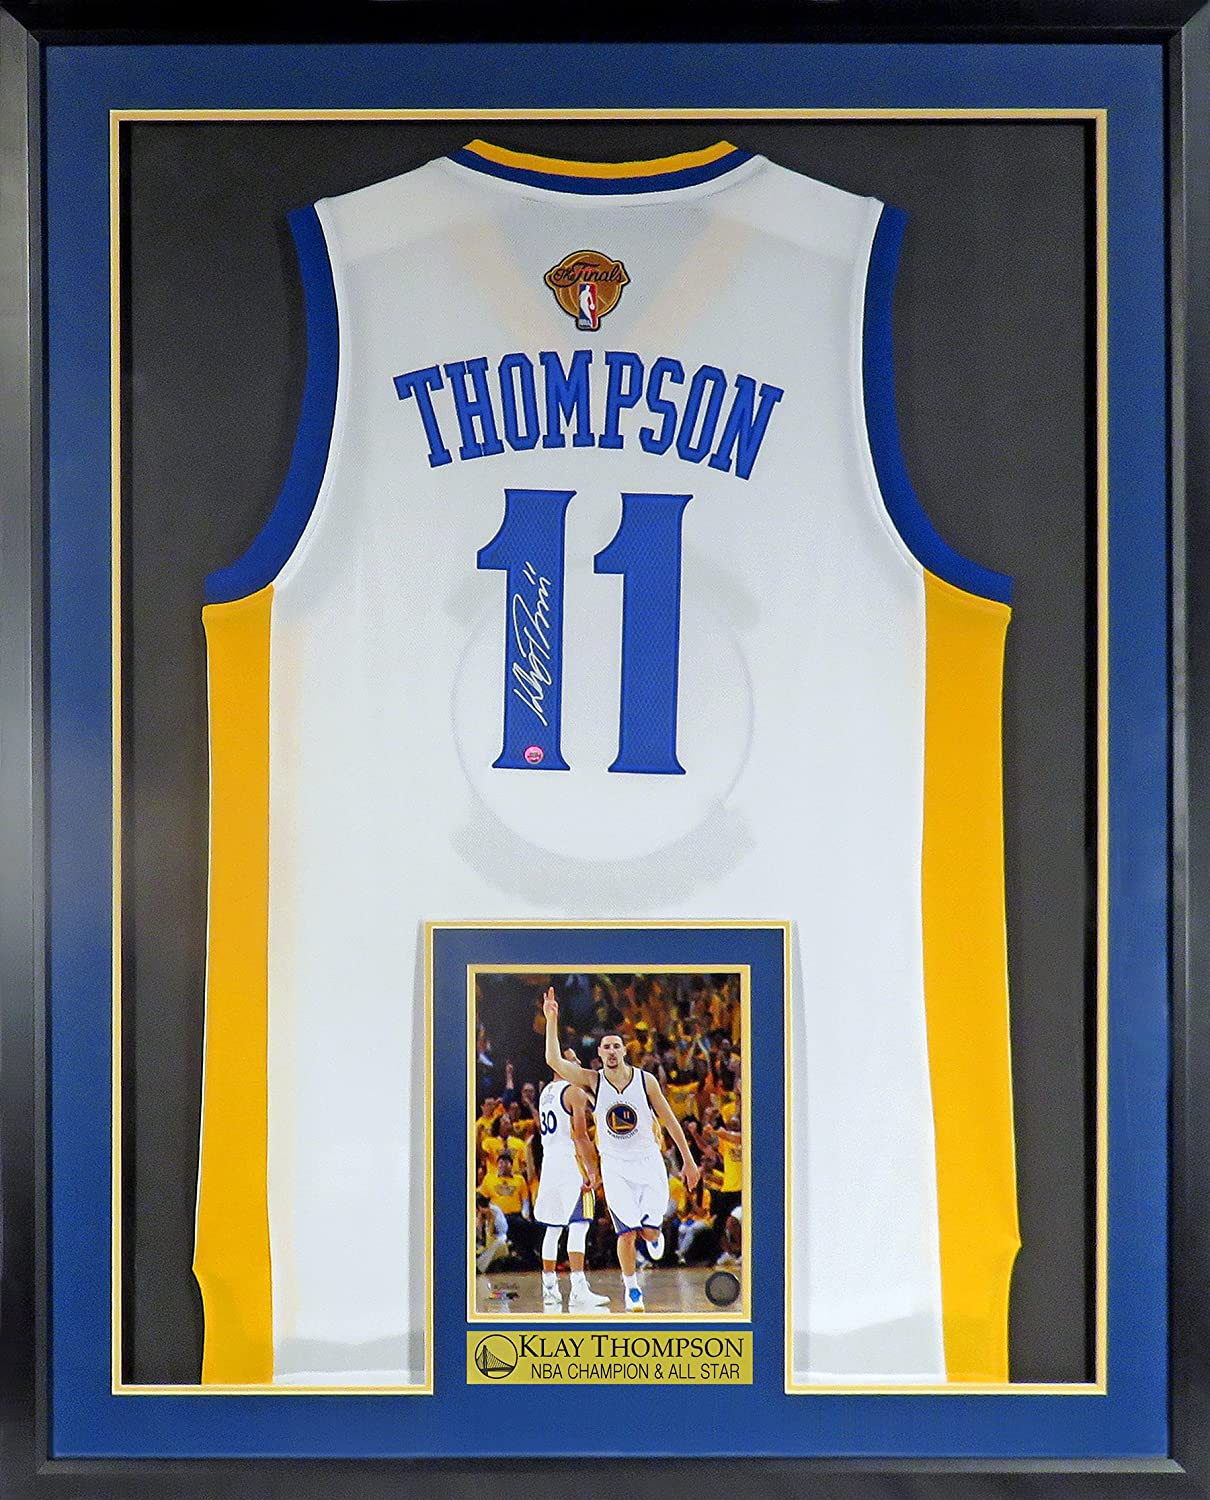 cheaper f4079 315ae GS Warriors Klay Thompson Autographed Home Jersey w/ Finals ...